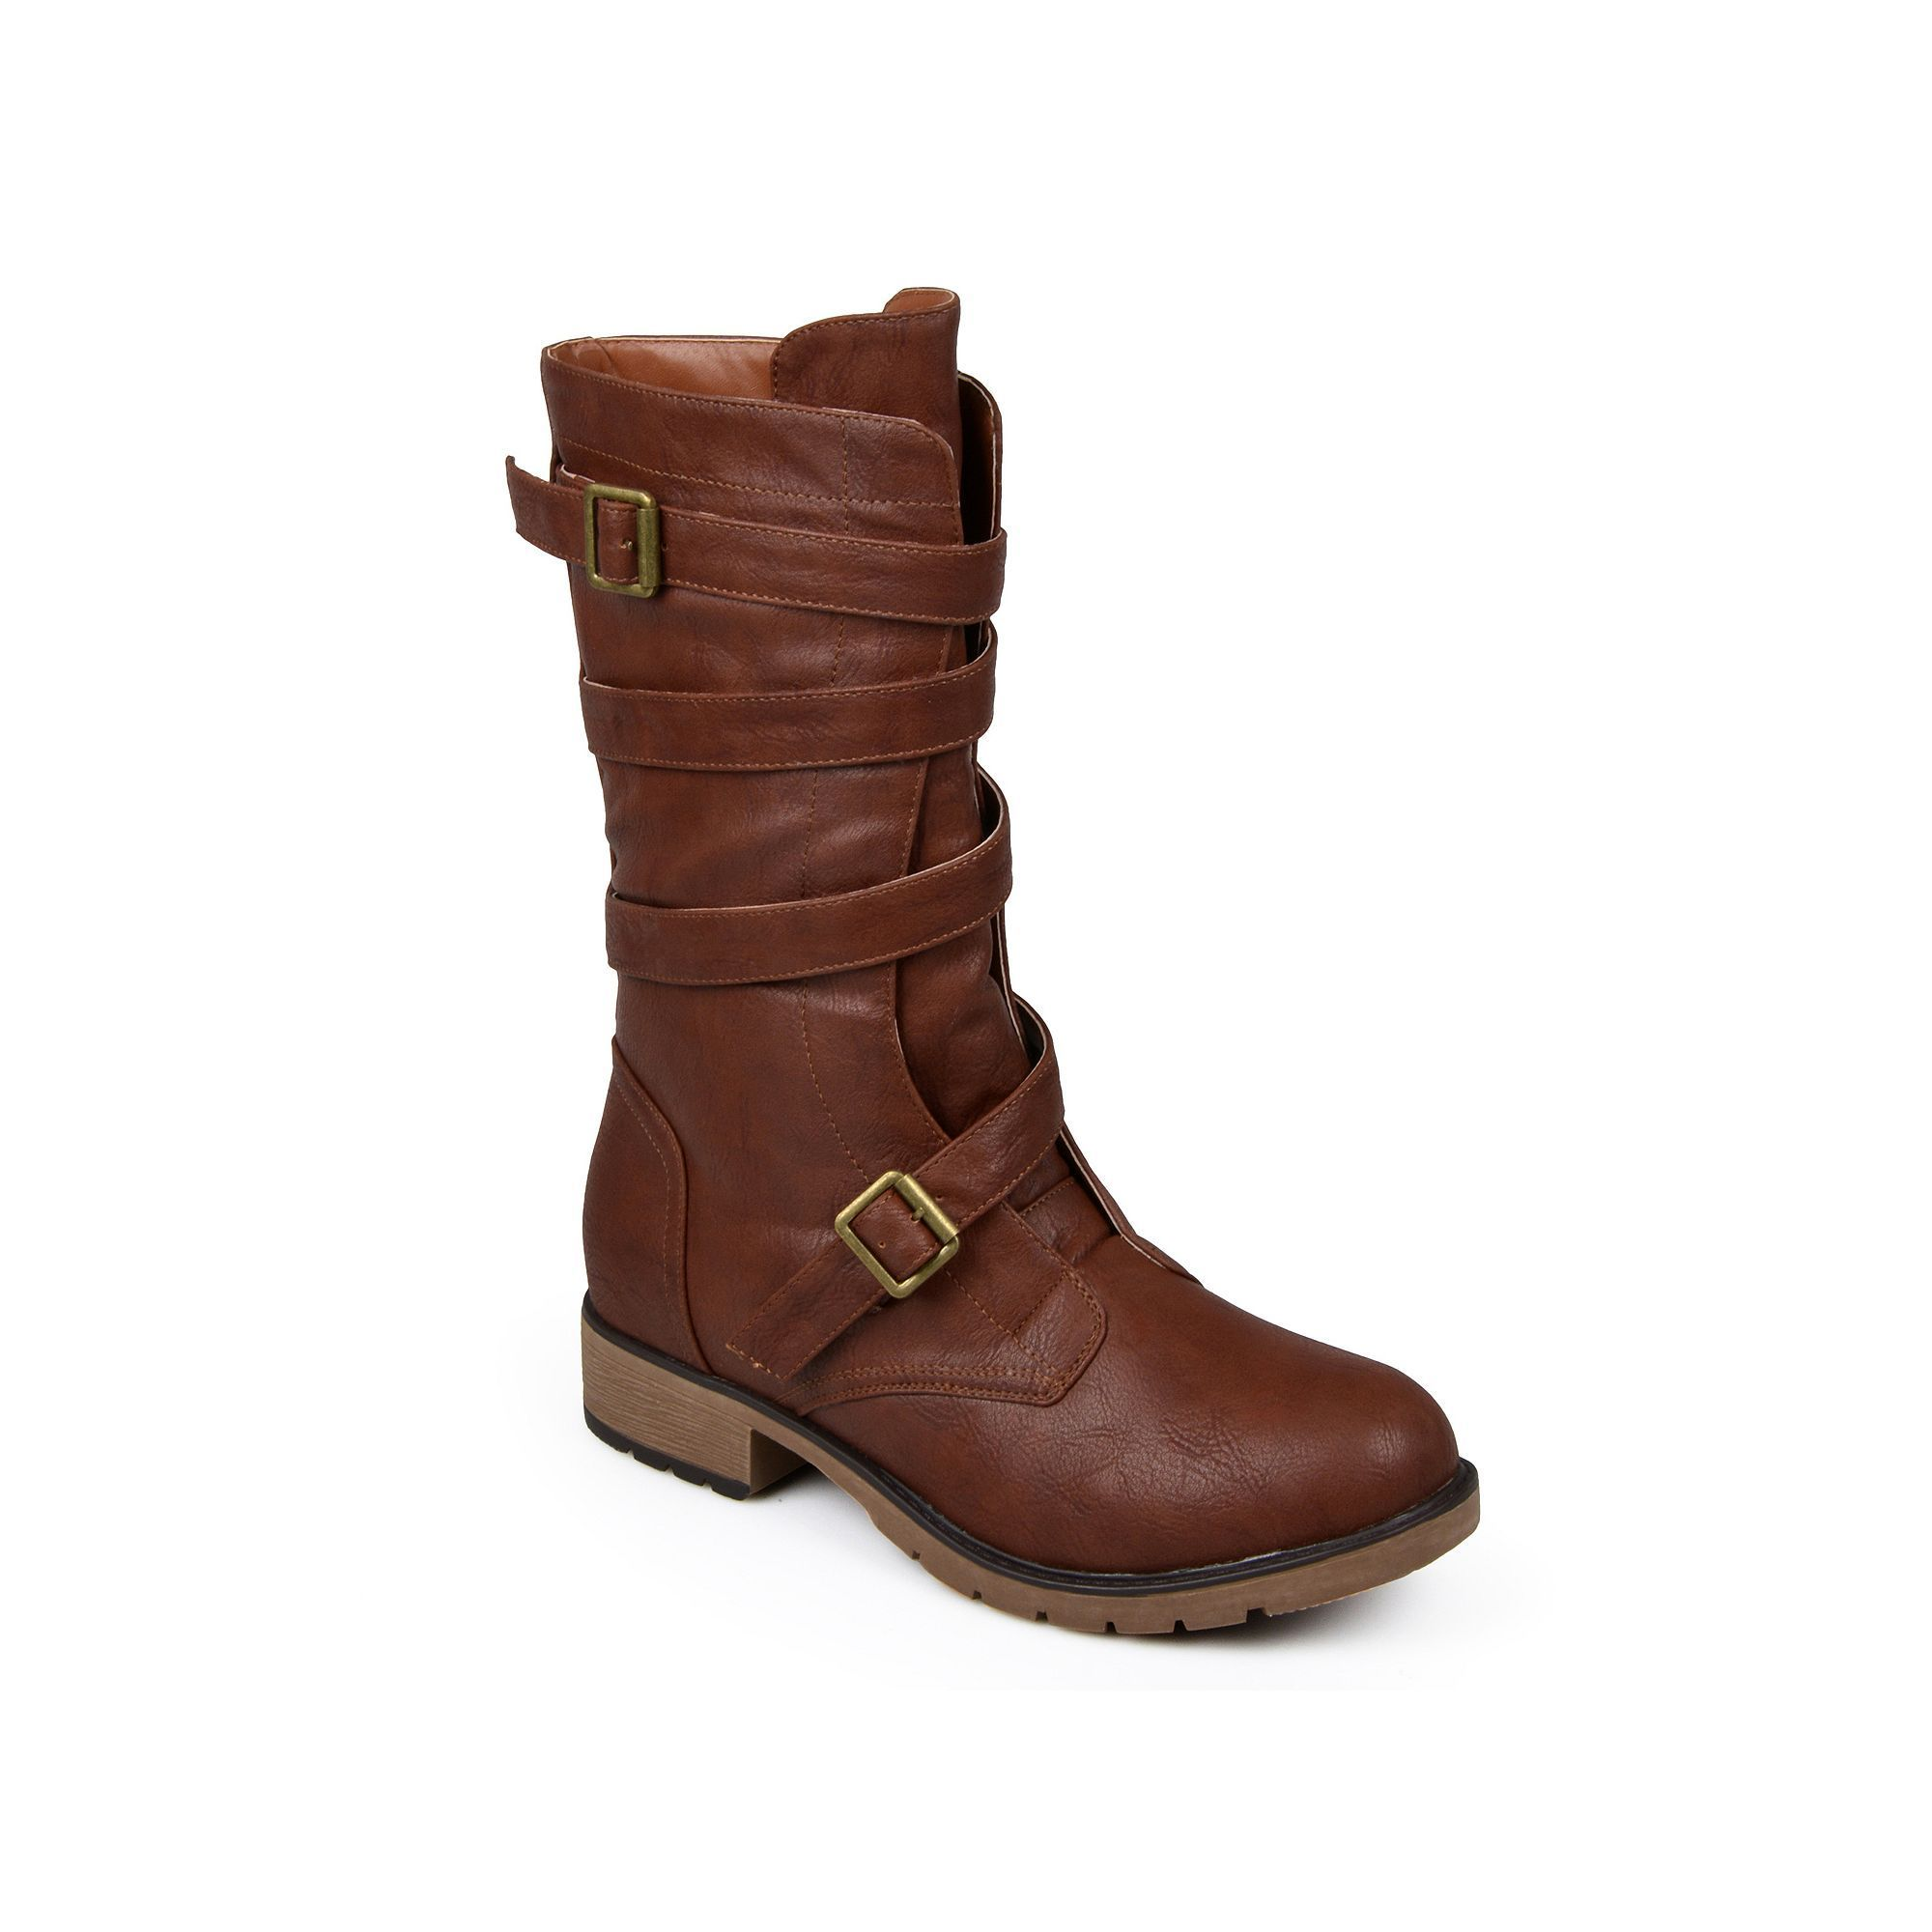 Top Fashion Journee Collection Jennica Women's Midcalf Boots  Brown